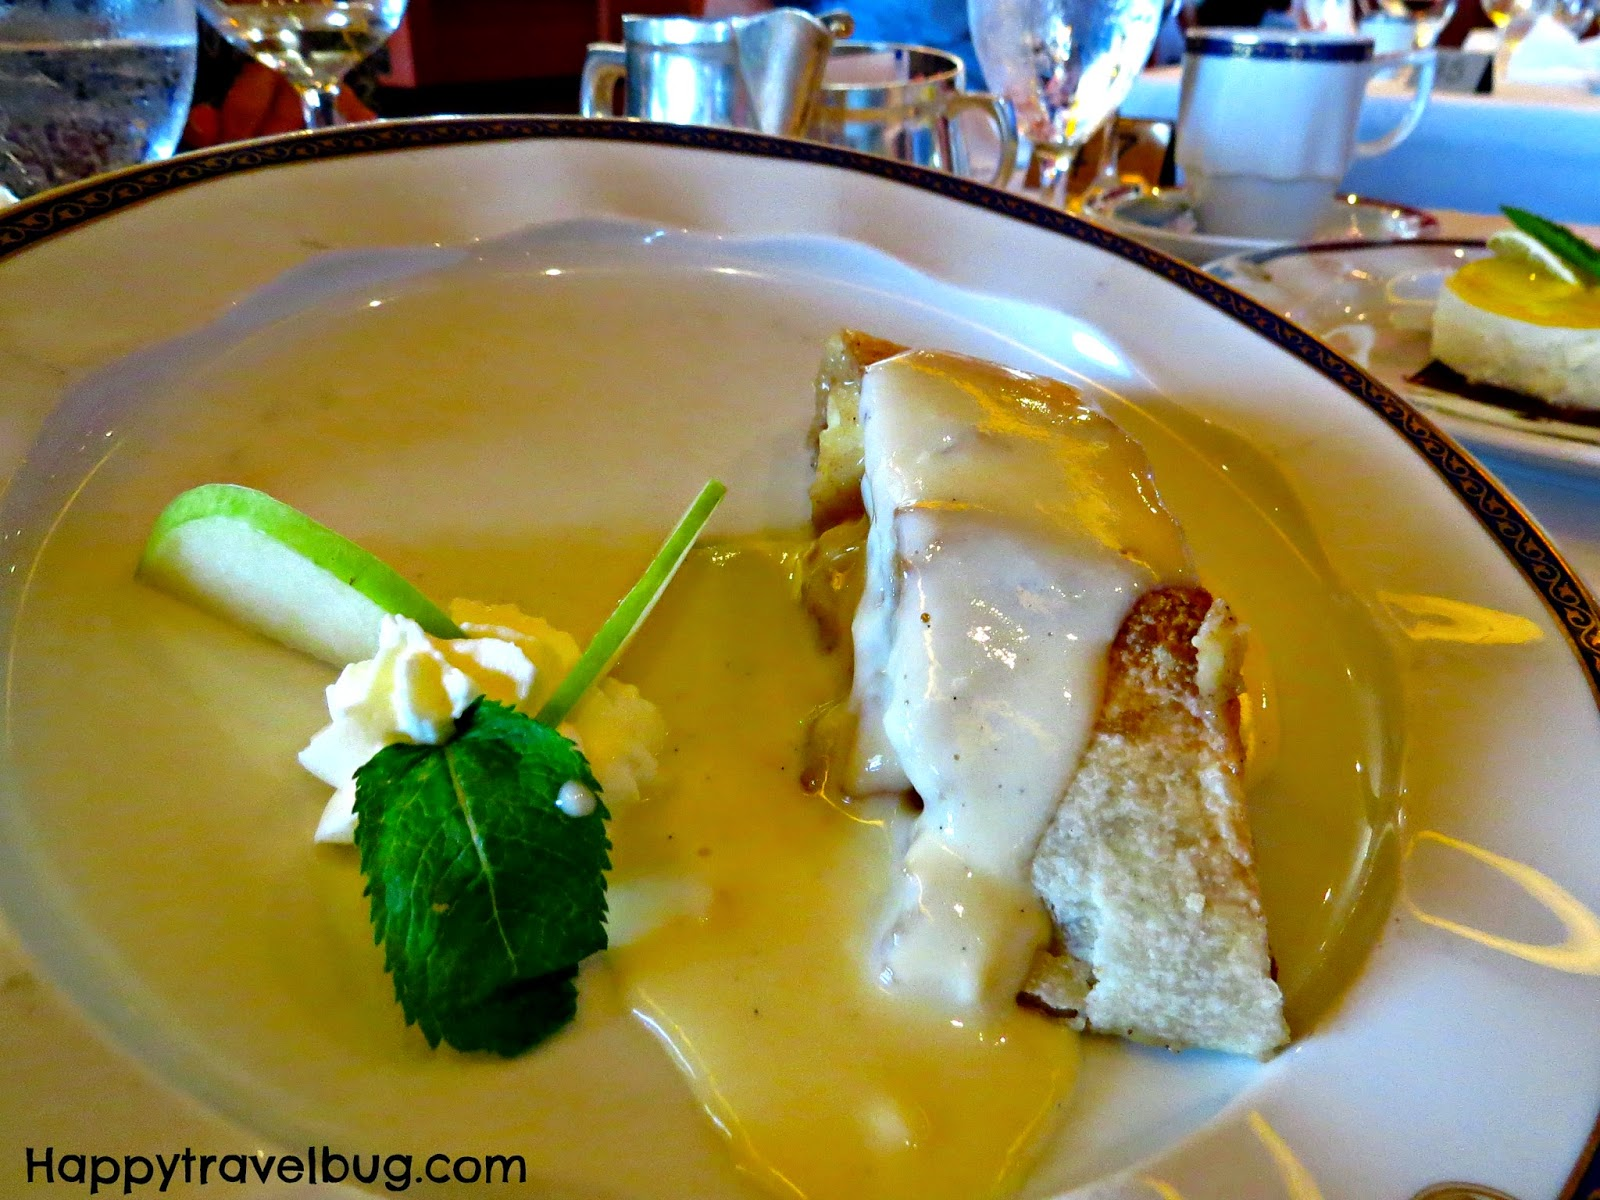 Apple Strudel from dinner on our Holland America Cruise